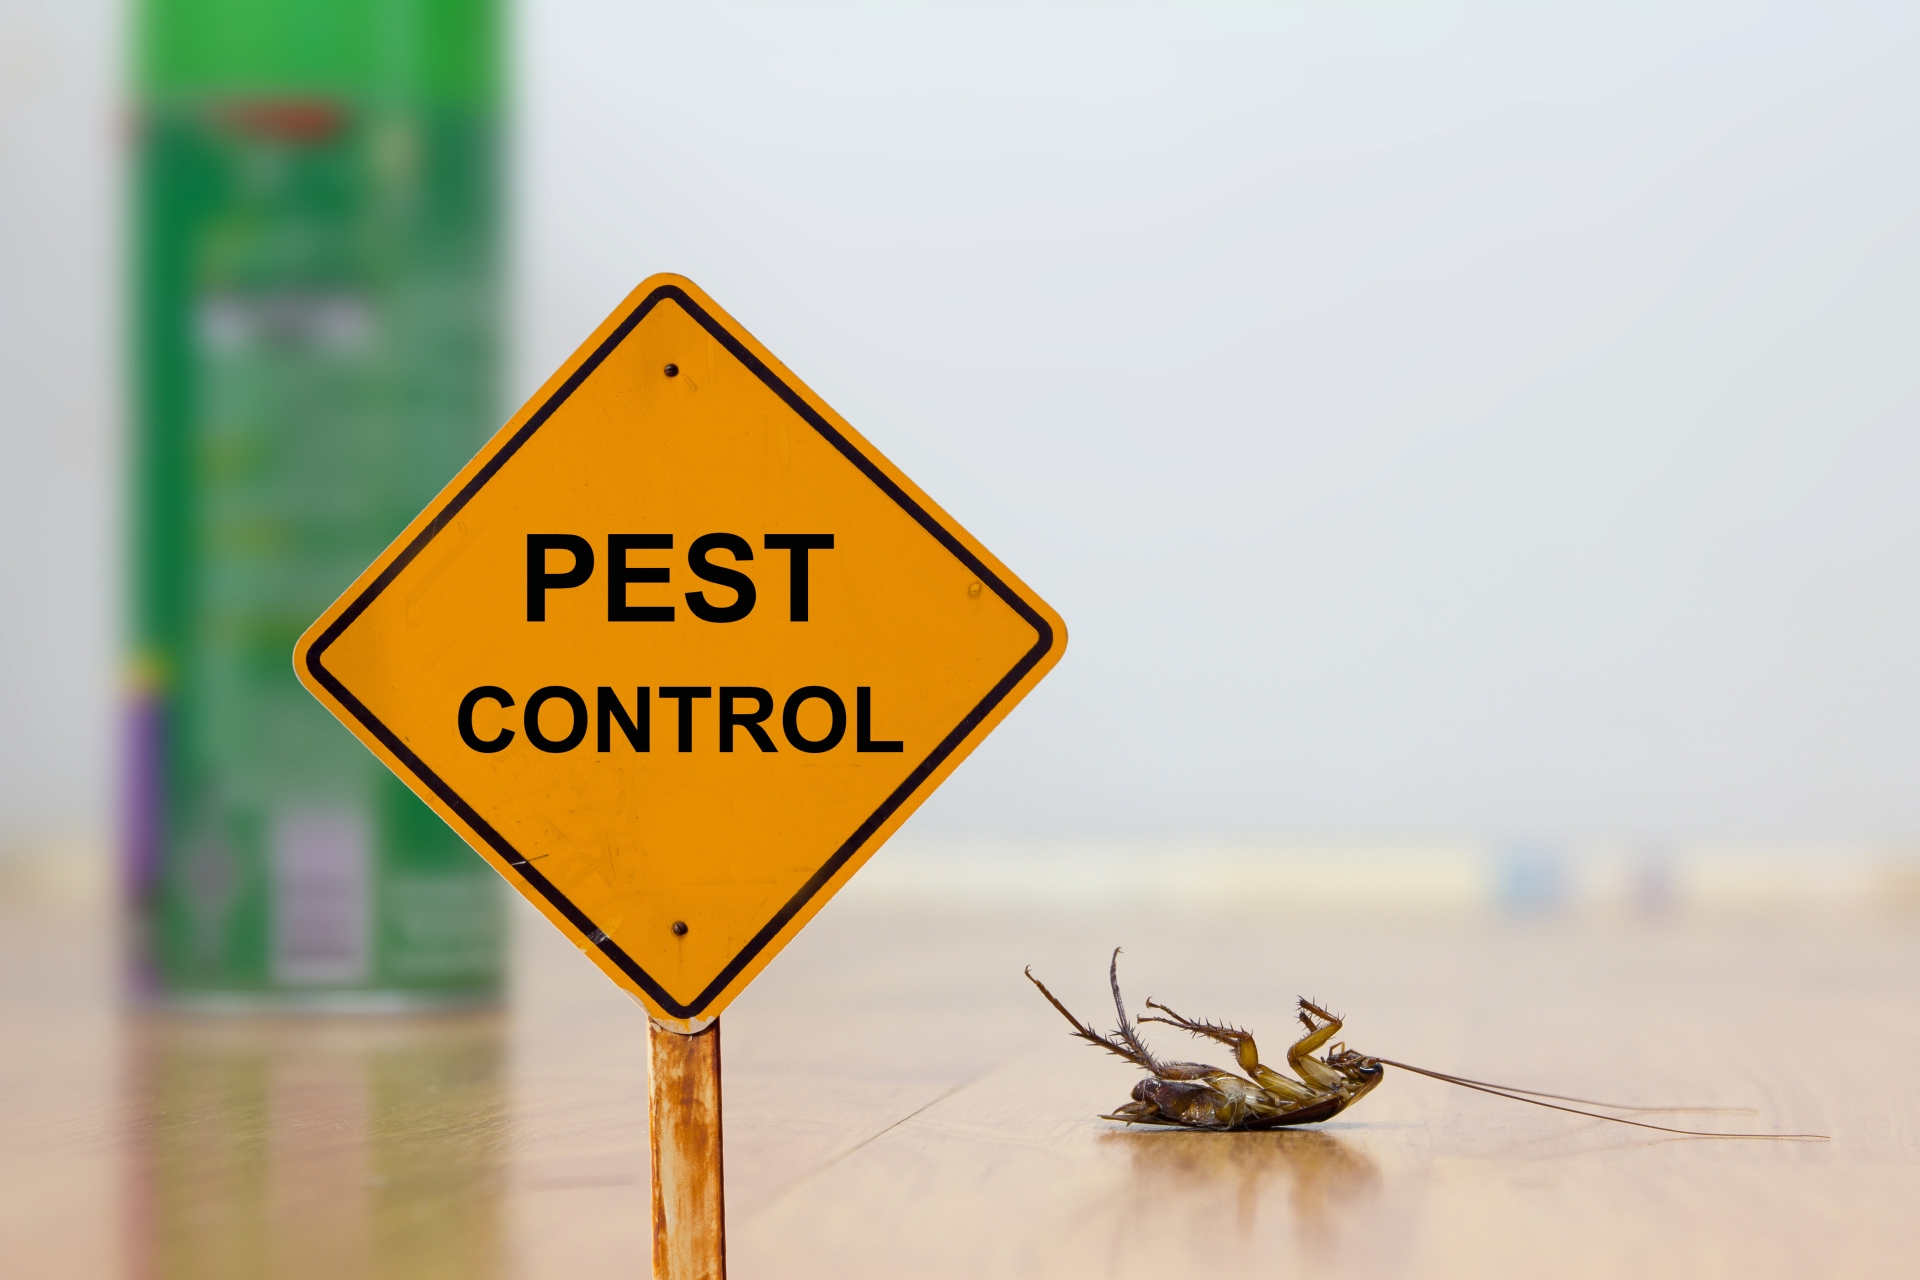 24 Hour Pest Control, Pest Control in St Paul's, Fleet Street, EC4. Call Now 020 8166 9746